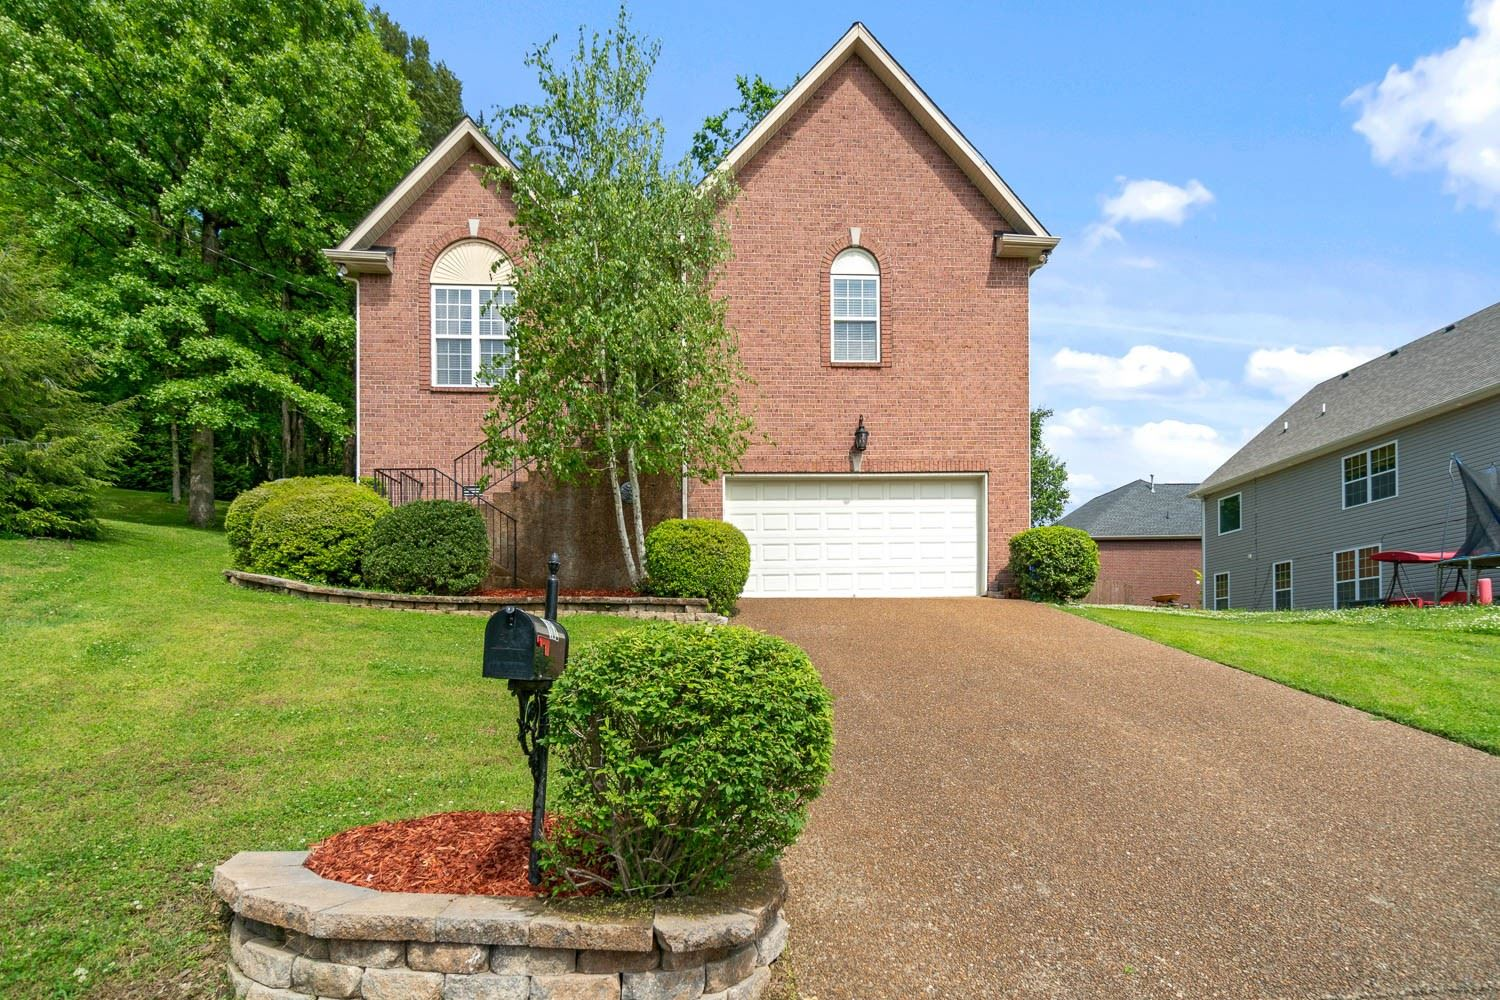 102 Muir Ct, Old Hickory, TN 37138 - MLS#: 2250956